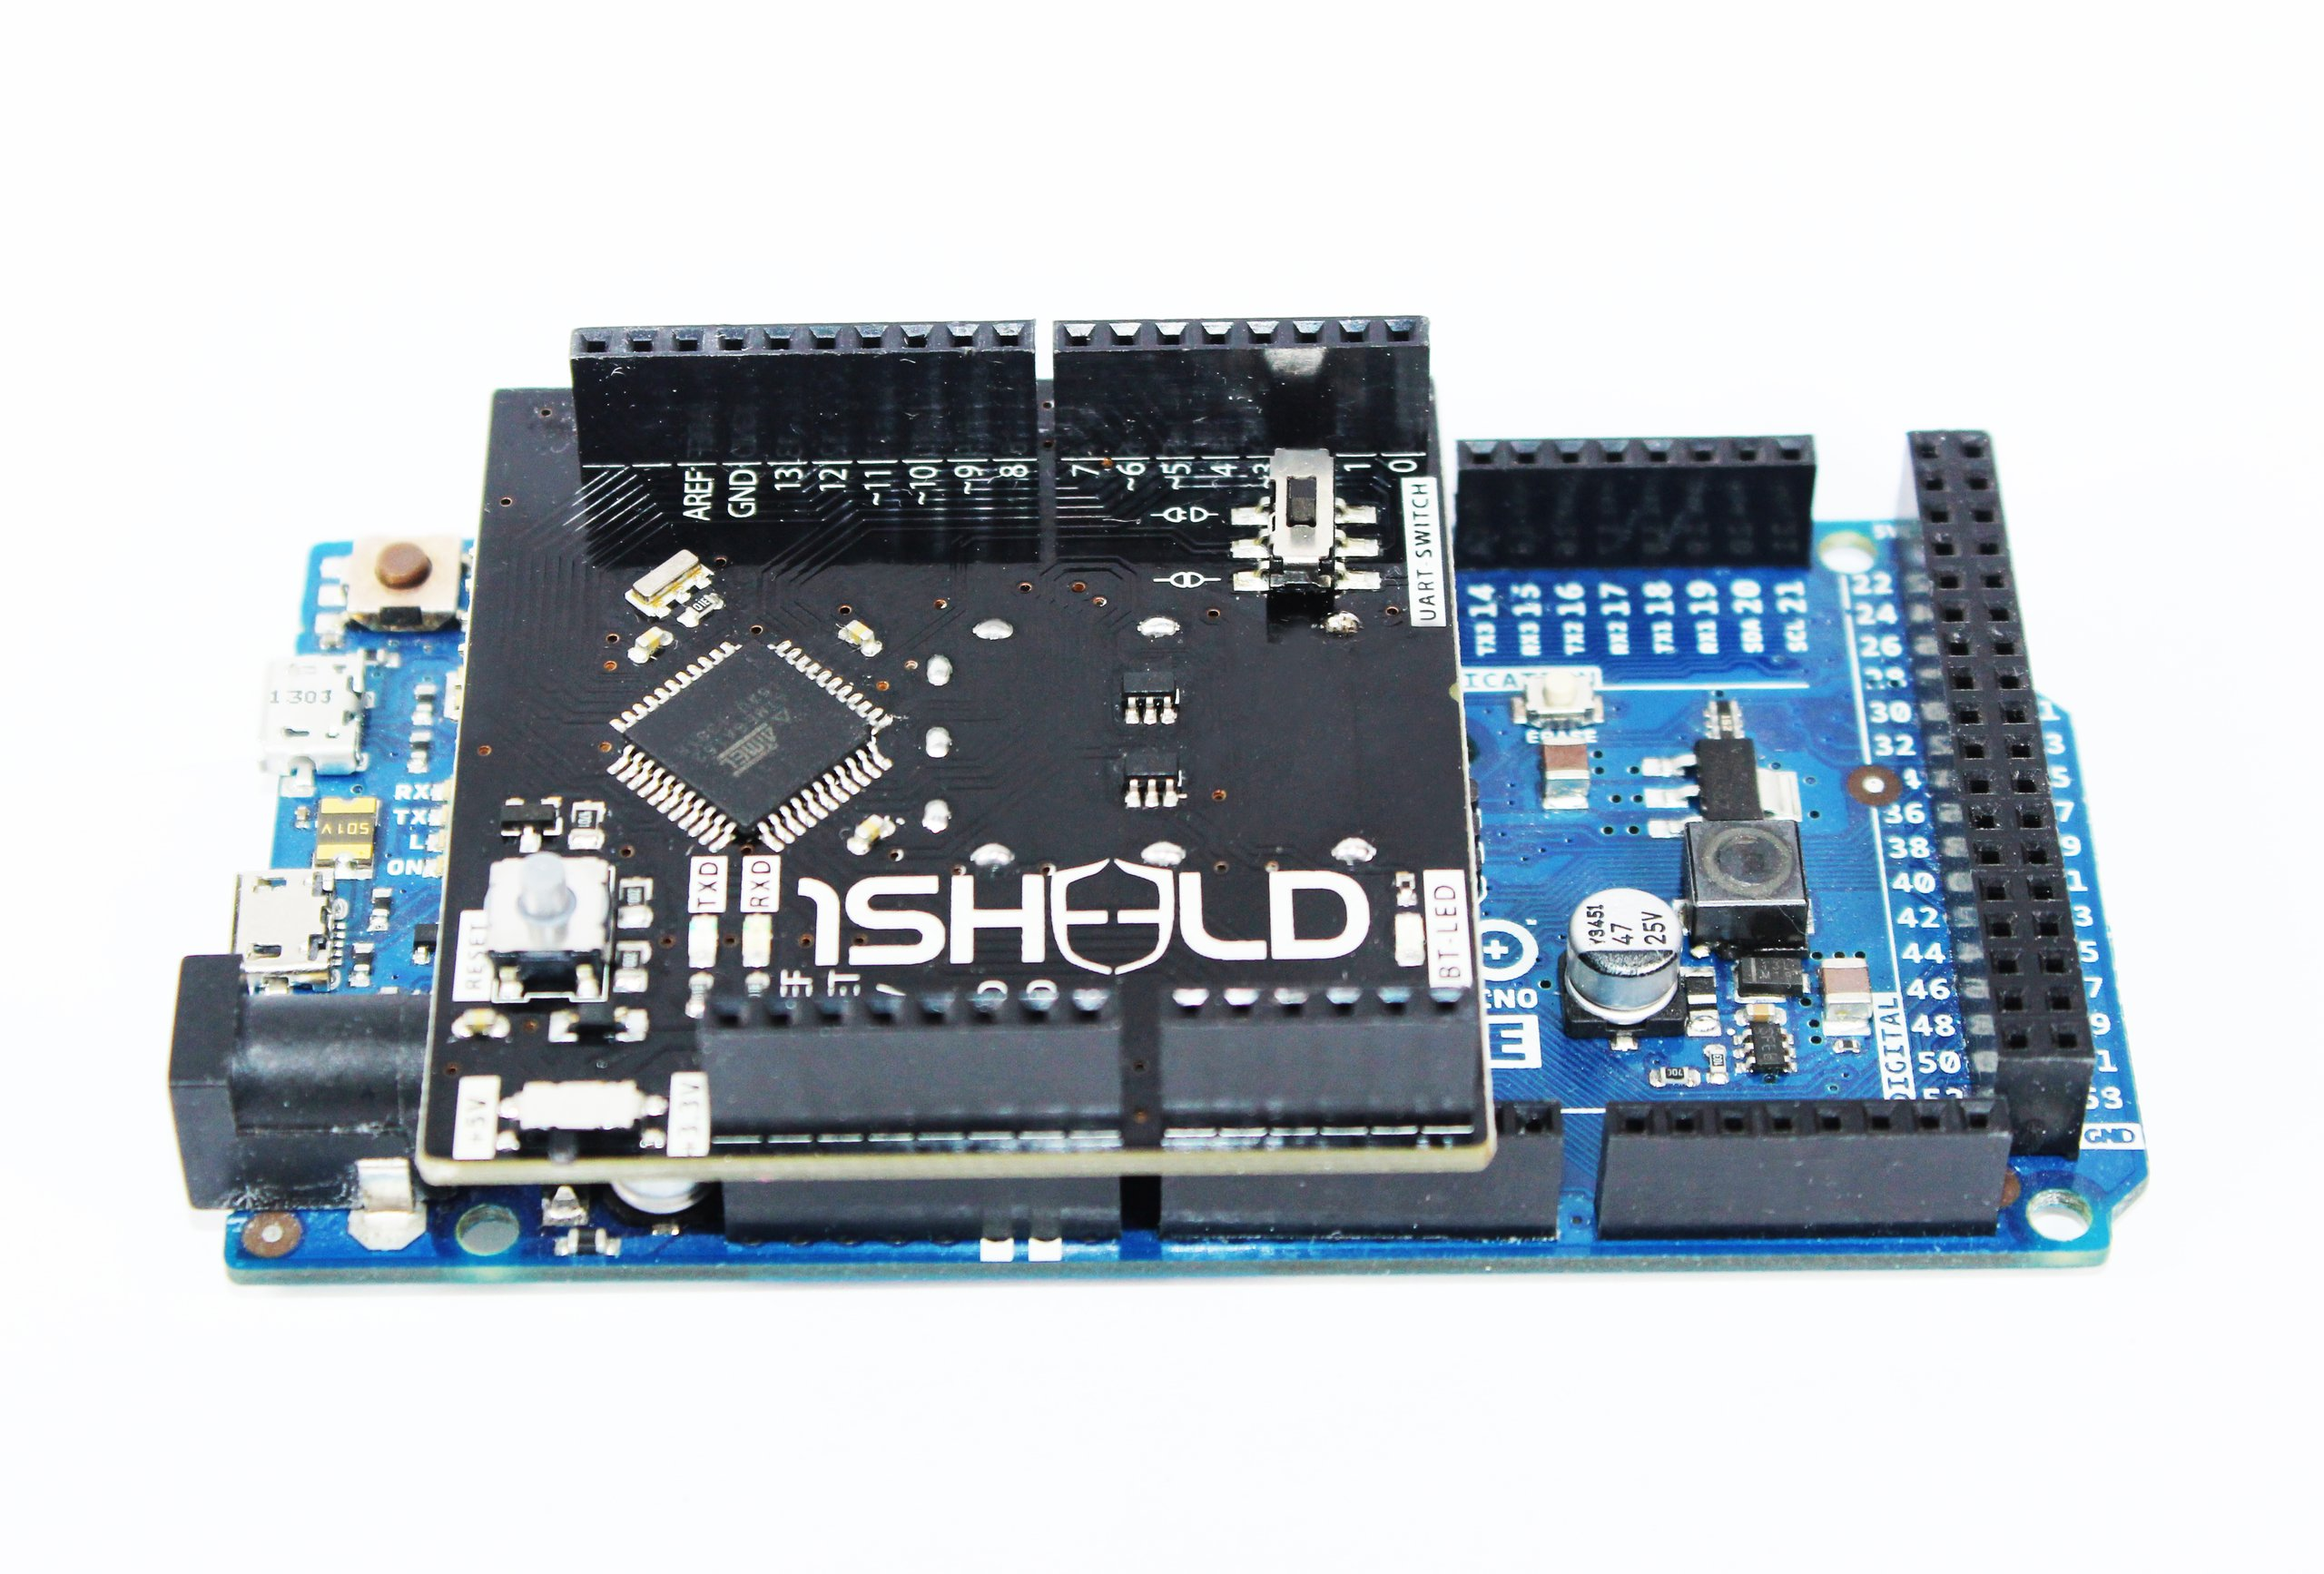 Sheeld for android arduino smartphone shield from